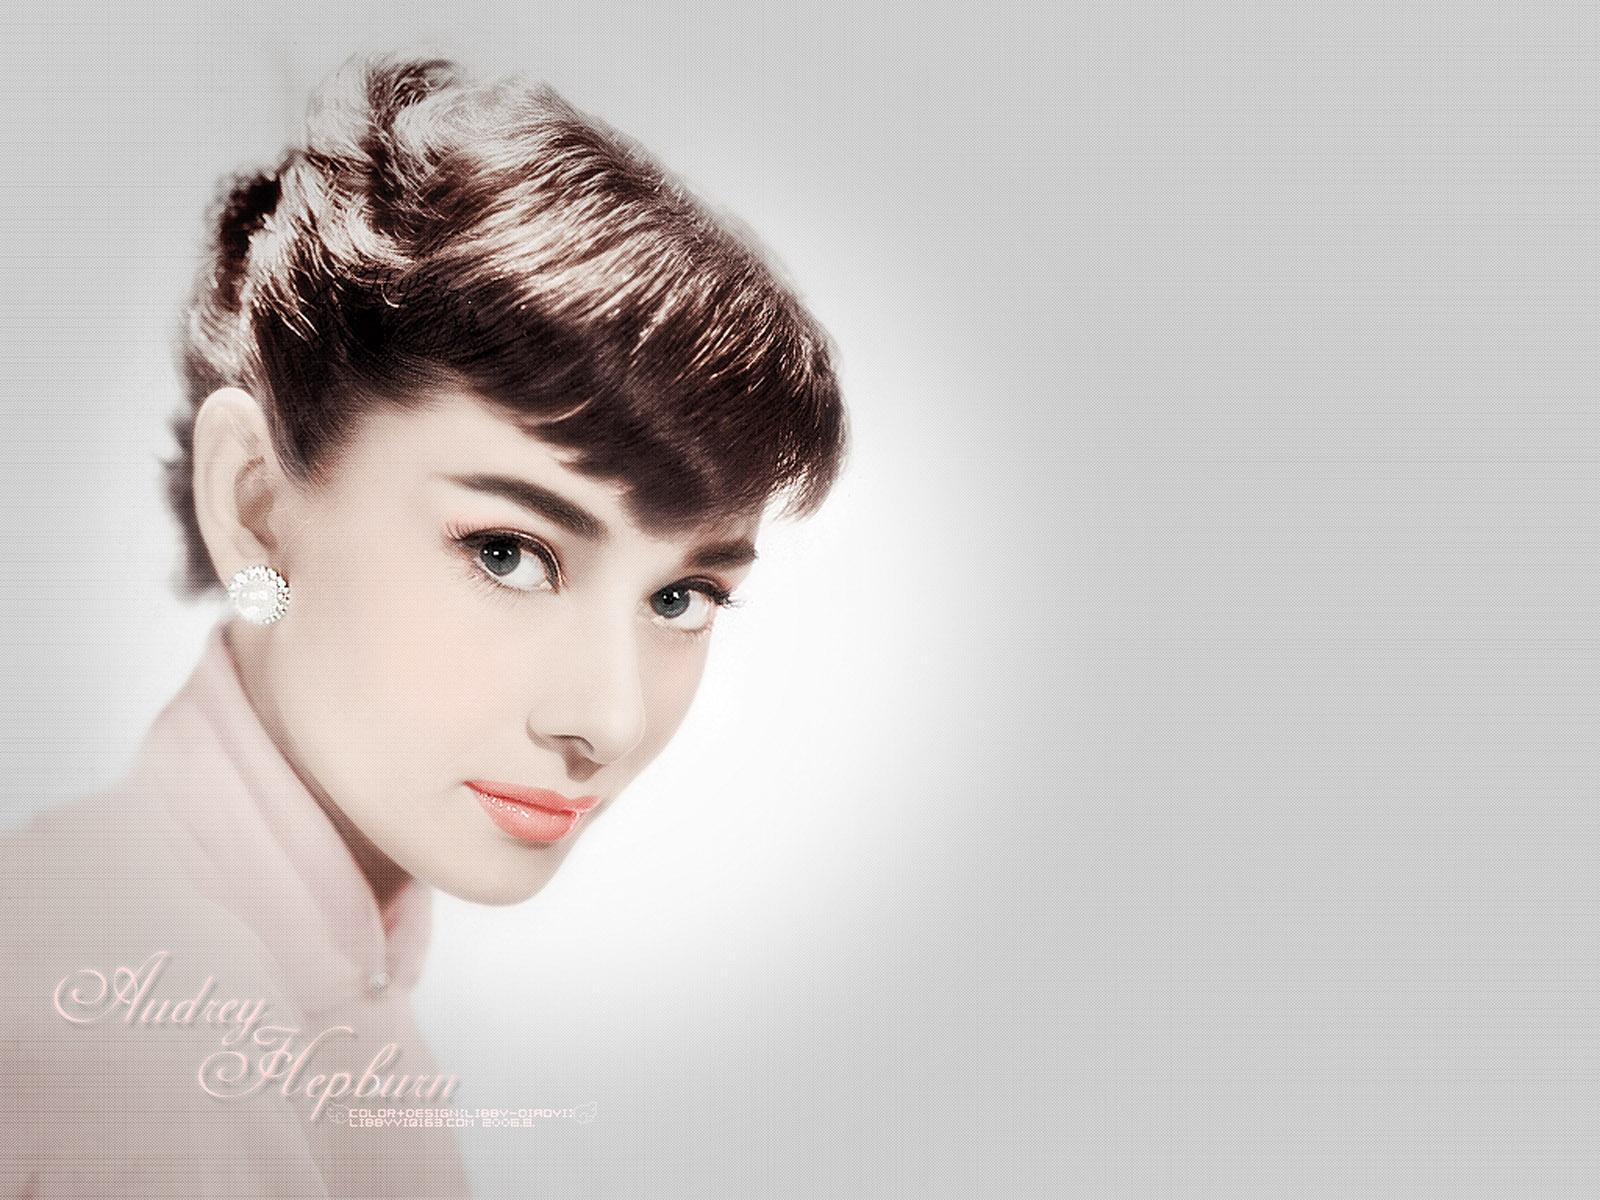 Audrey Hepburn Wallpapers Wallpaper Audrey Hepburn 1600x1200